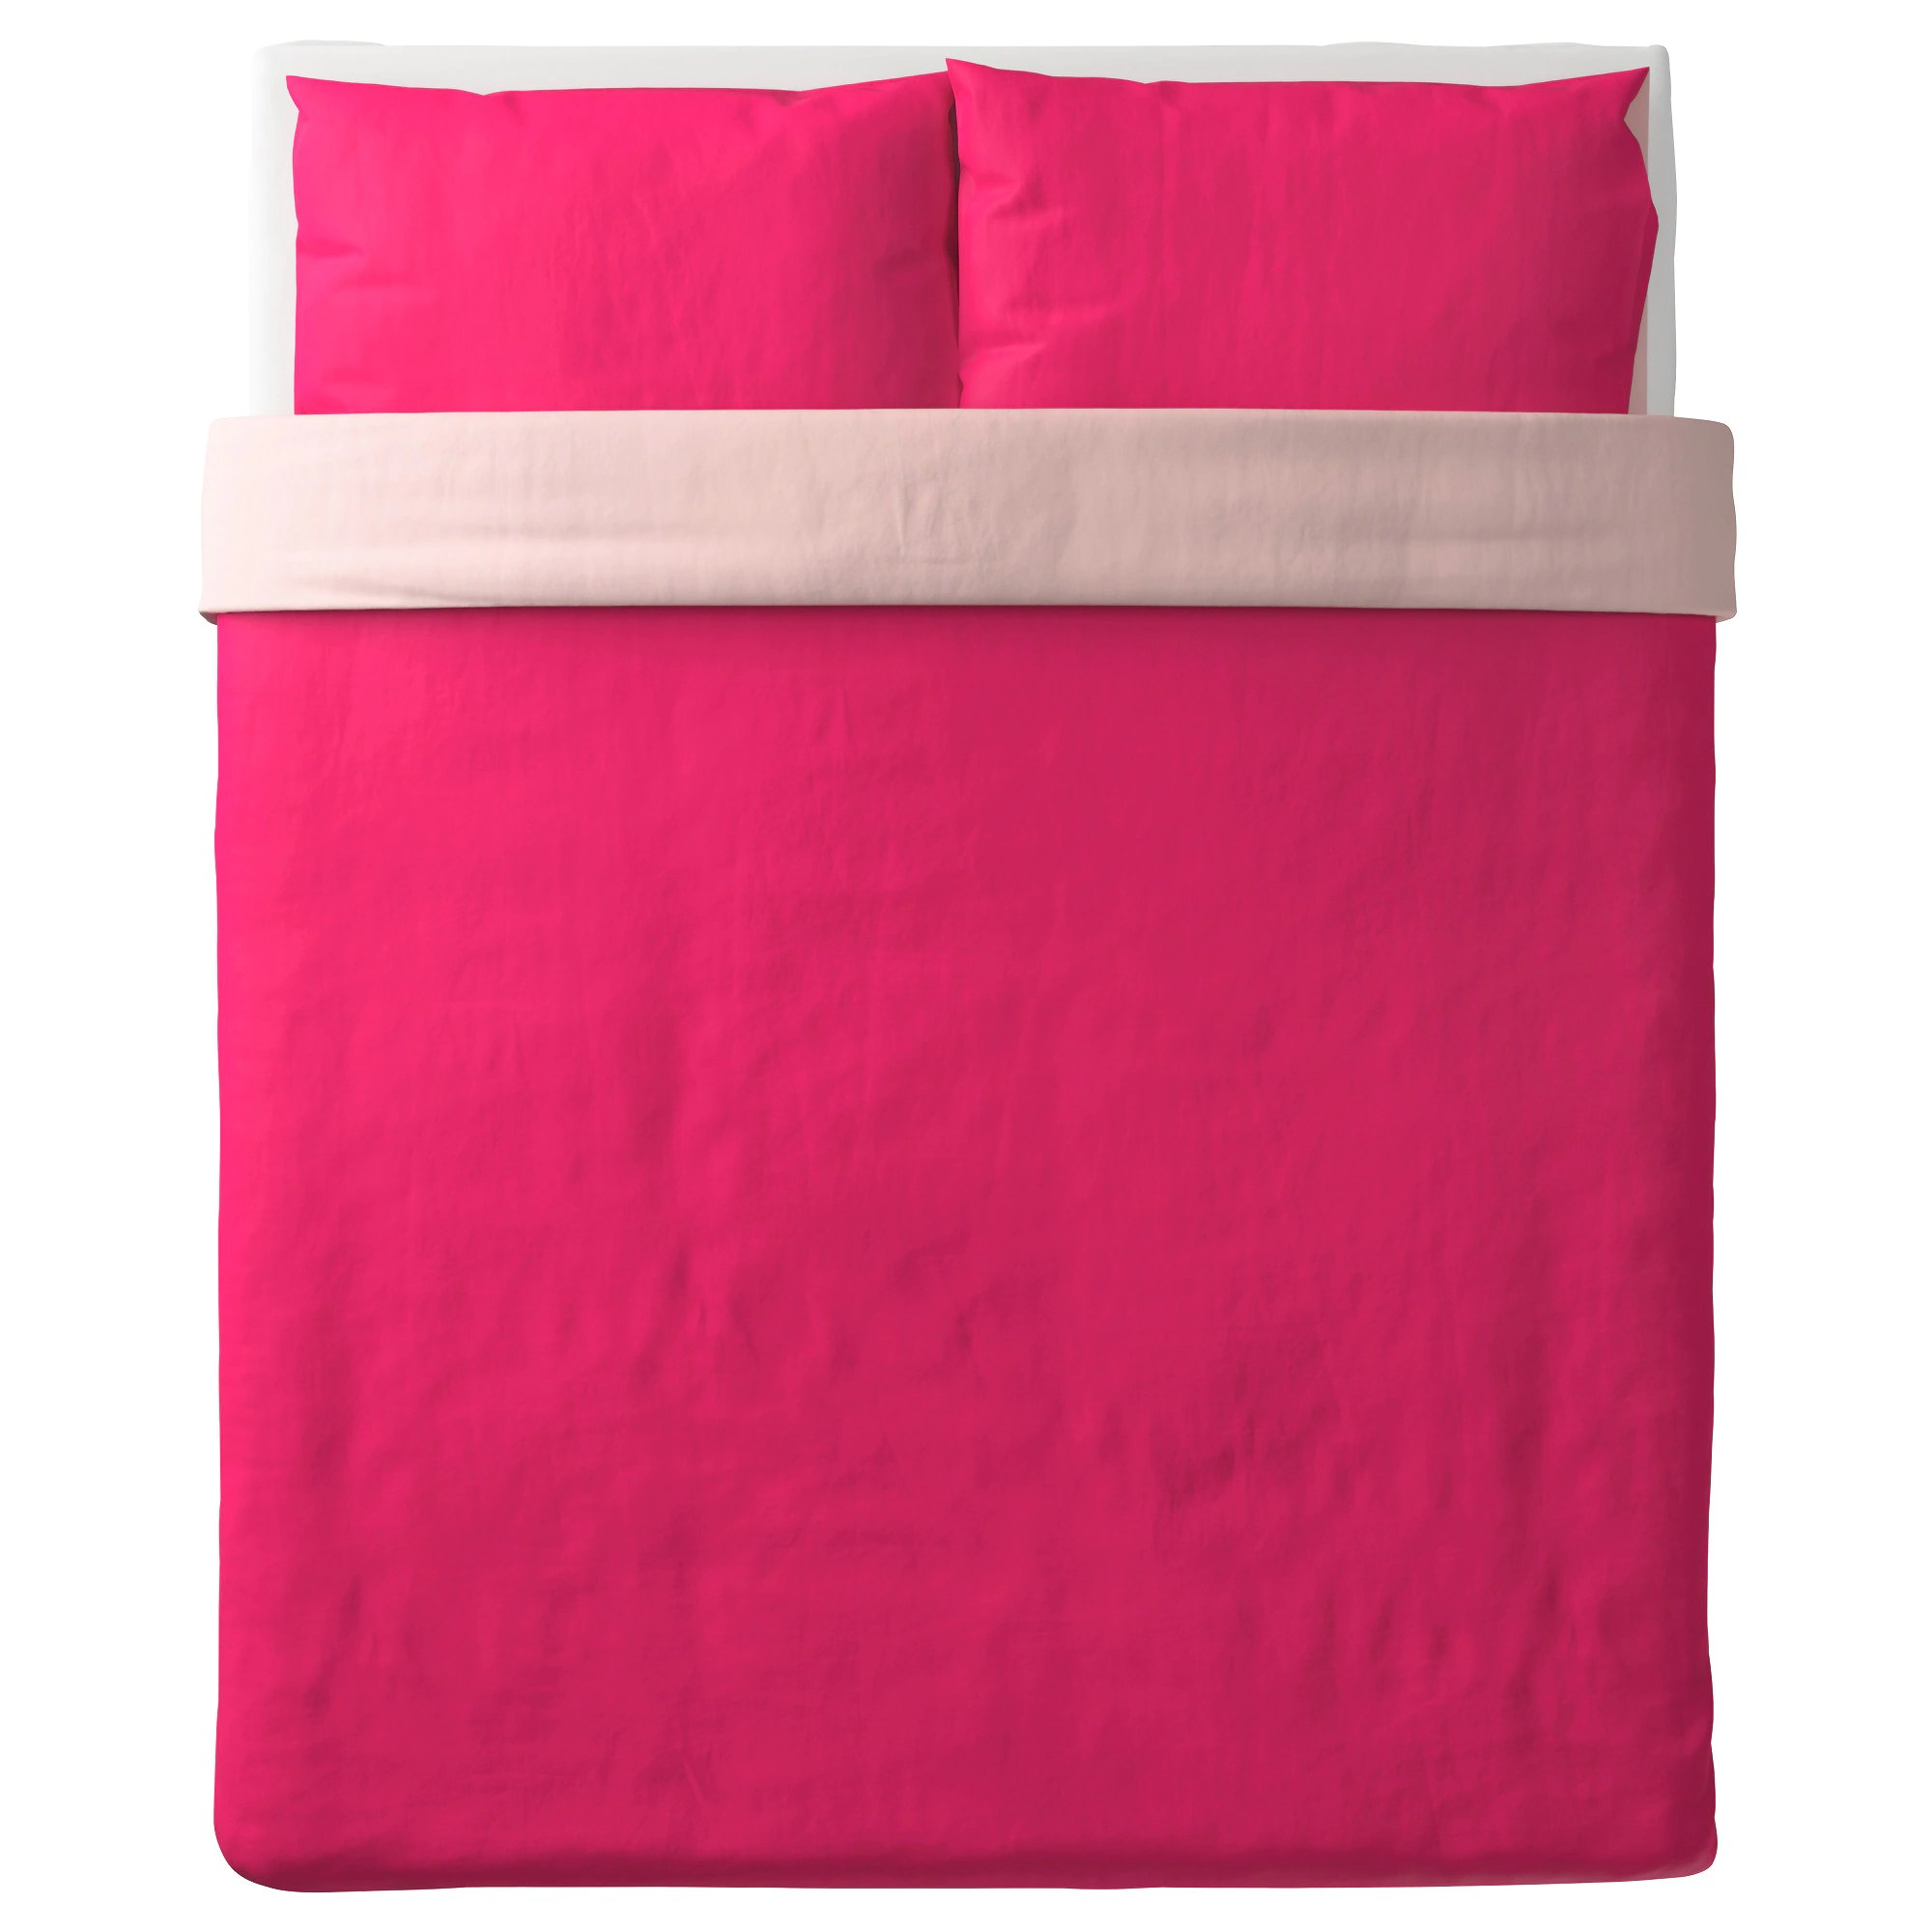 Pink Duvet Cover Dvala Duvet Cover And Pillowcase S Pink